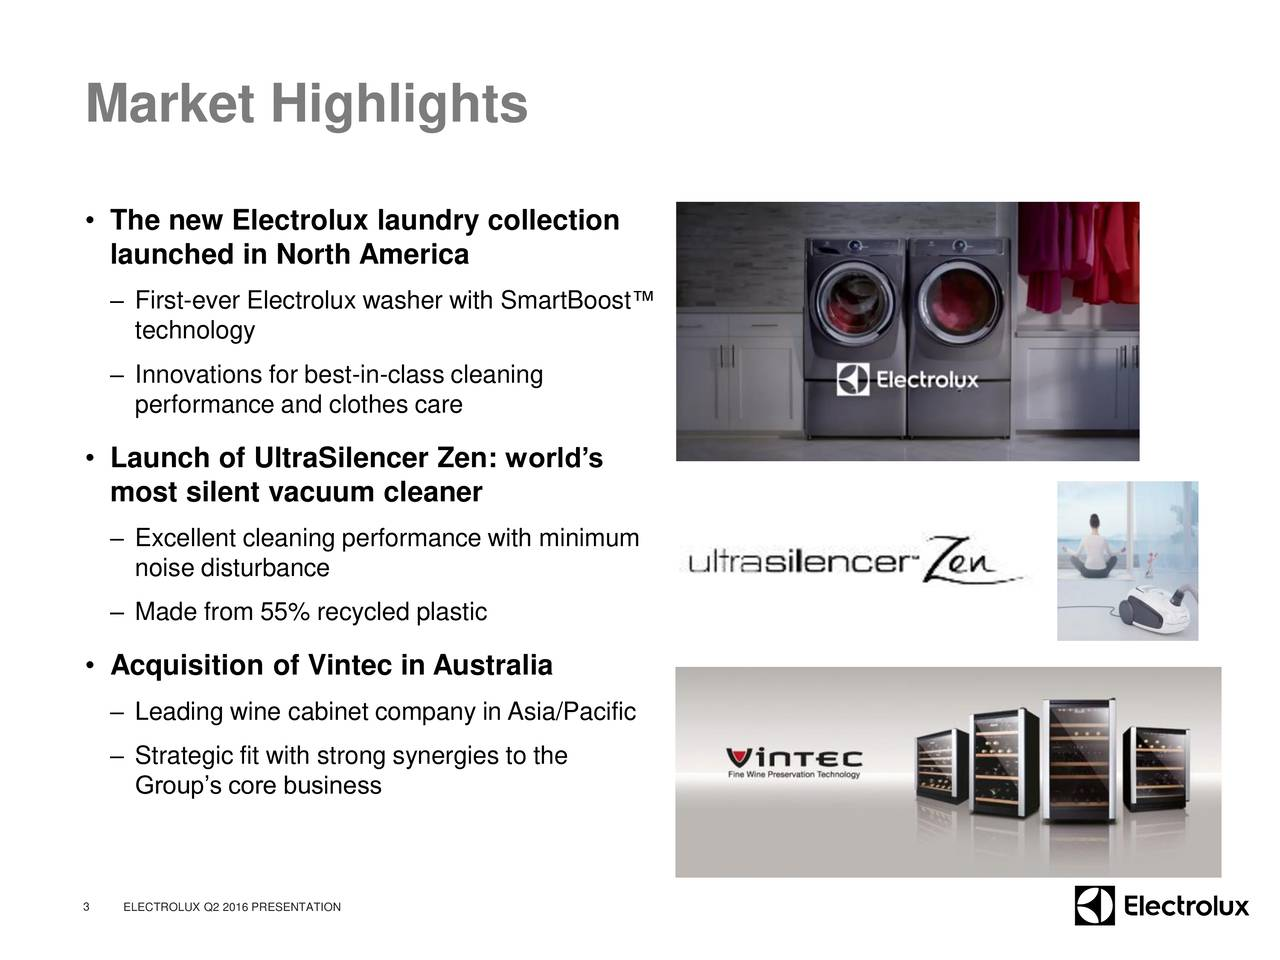 The new Electrolux laundry collection launched in North America First-ever Electrolux washer with SmartBoost technology Innovations for best-in-class cleaning performance and clothes care Launch of UltraSilencer Zen: worlds most silent vacuum cleaner Excellent cleaning performance with minimum noise disturbance Made from 55% recycled plastic Acquisition of Vintec in Australia Leading wine cabinet company in Asia/Pacific Strategic fit with strong synergies to the Groups core business 3 ELECTROLUX Q2 2016 PRESENTATION